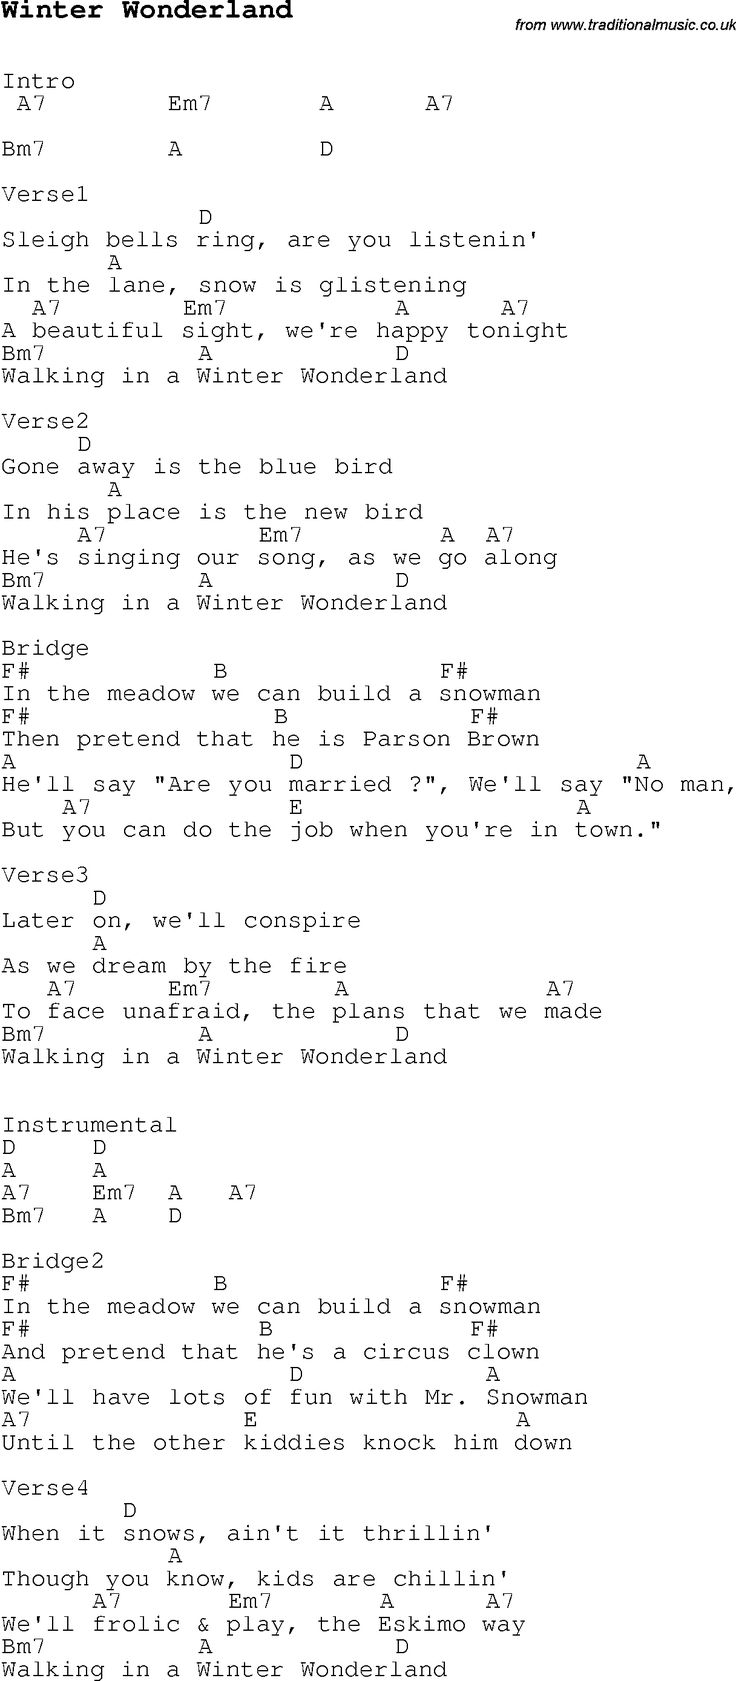 Christmas Songs and Carols, lyrics with chords for guitar banjo for Winter Wonderland